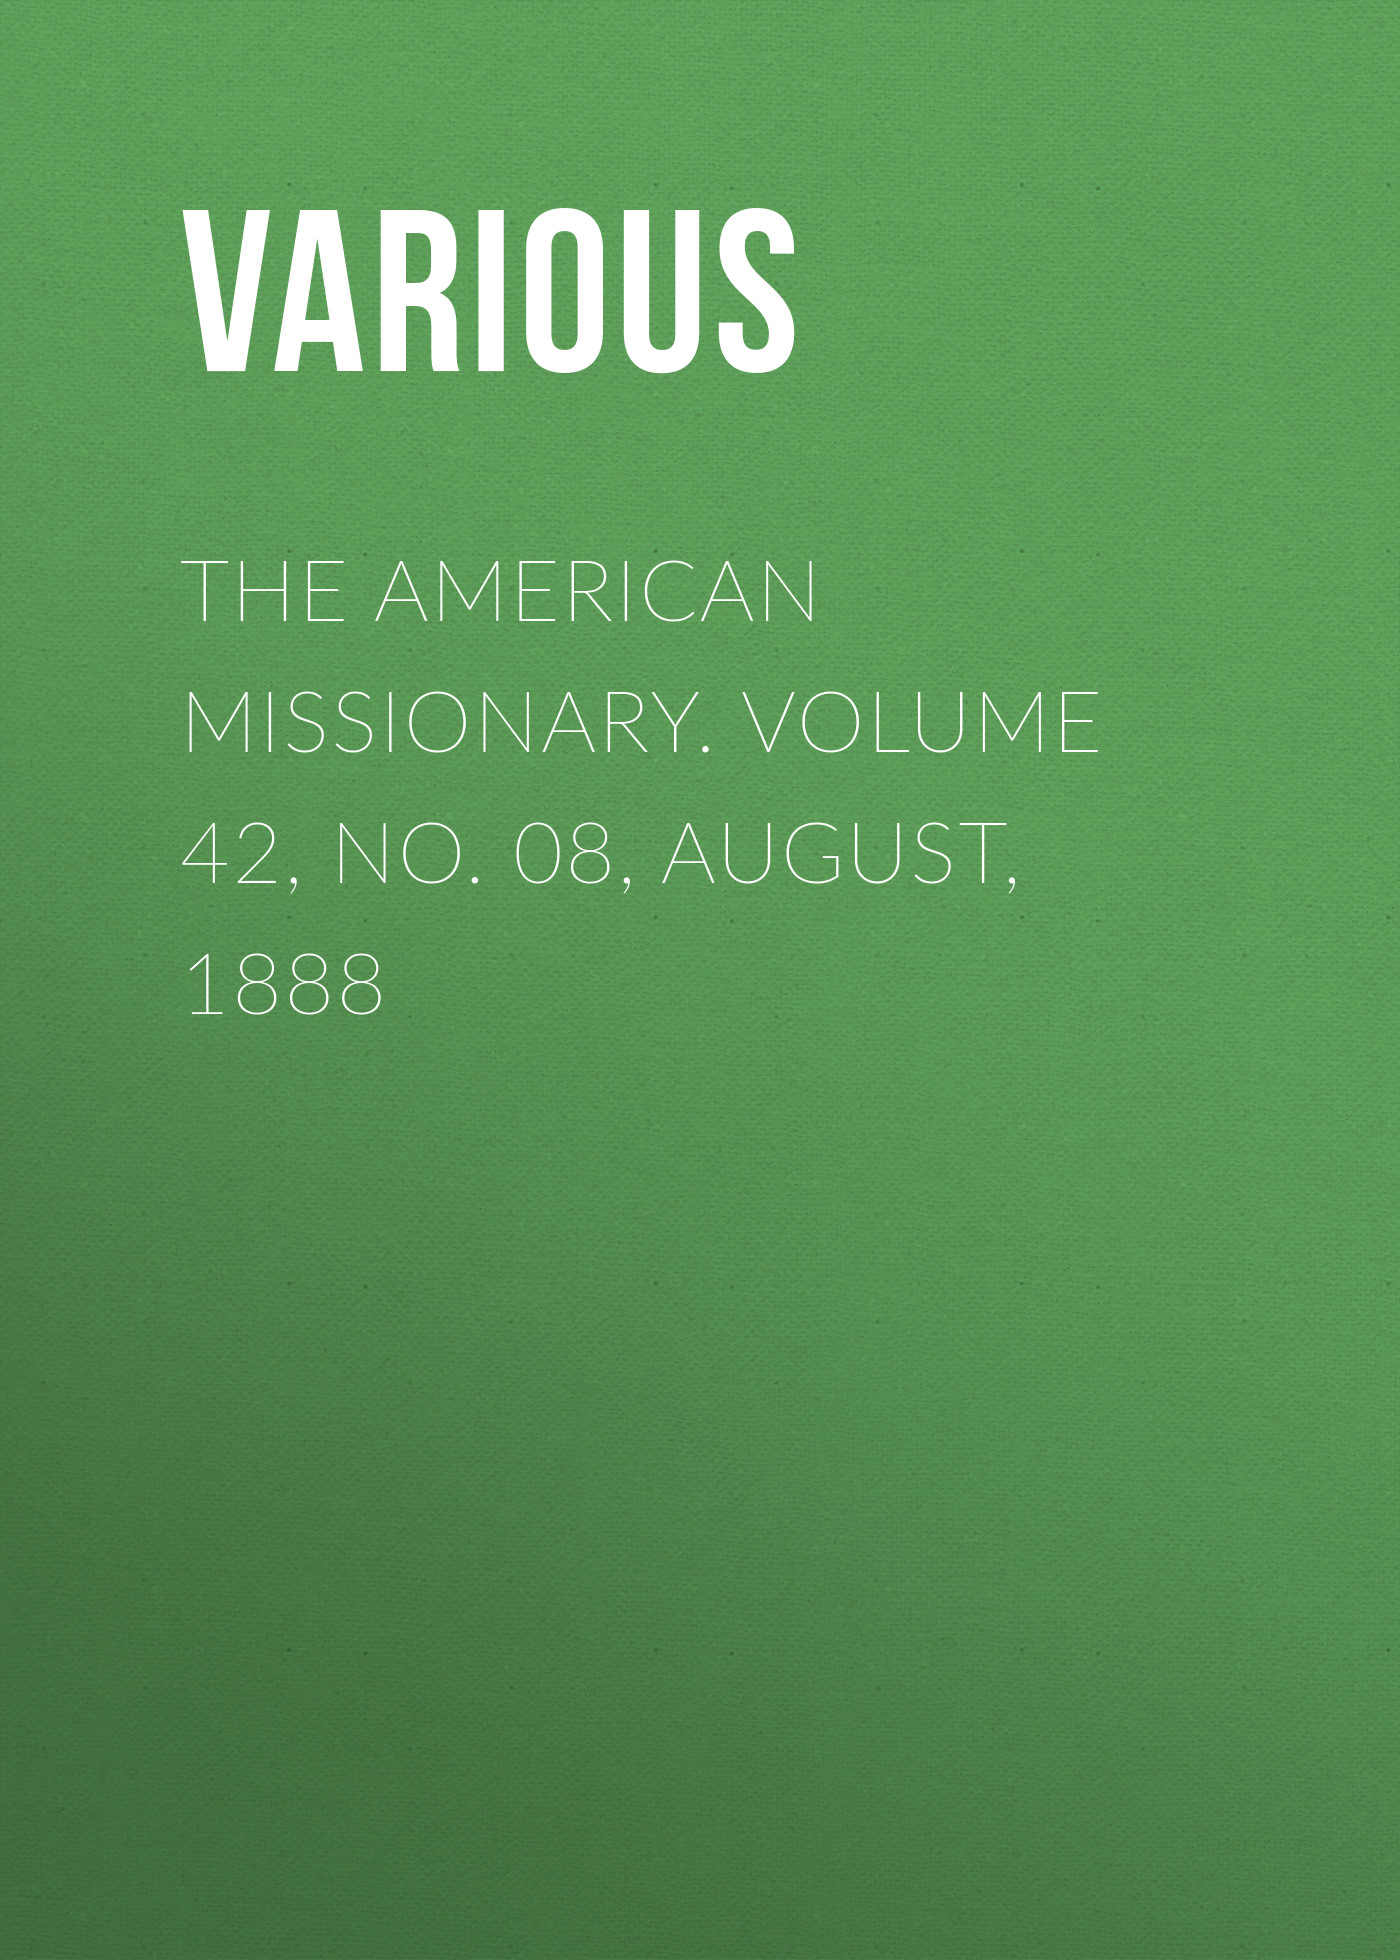 Various The American Missionary. Volume 42, No. 08, August, 1888